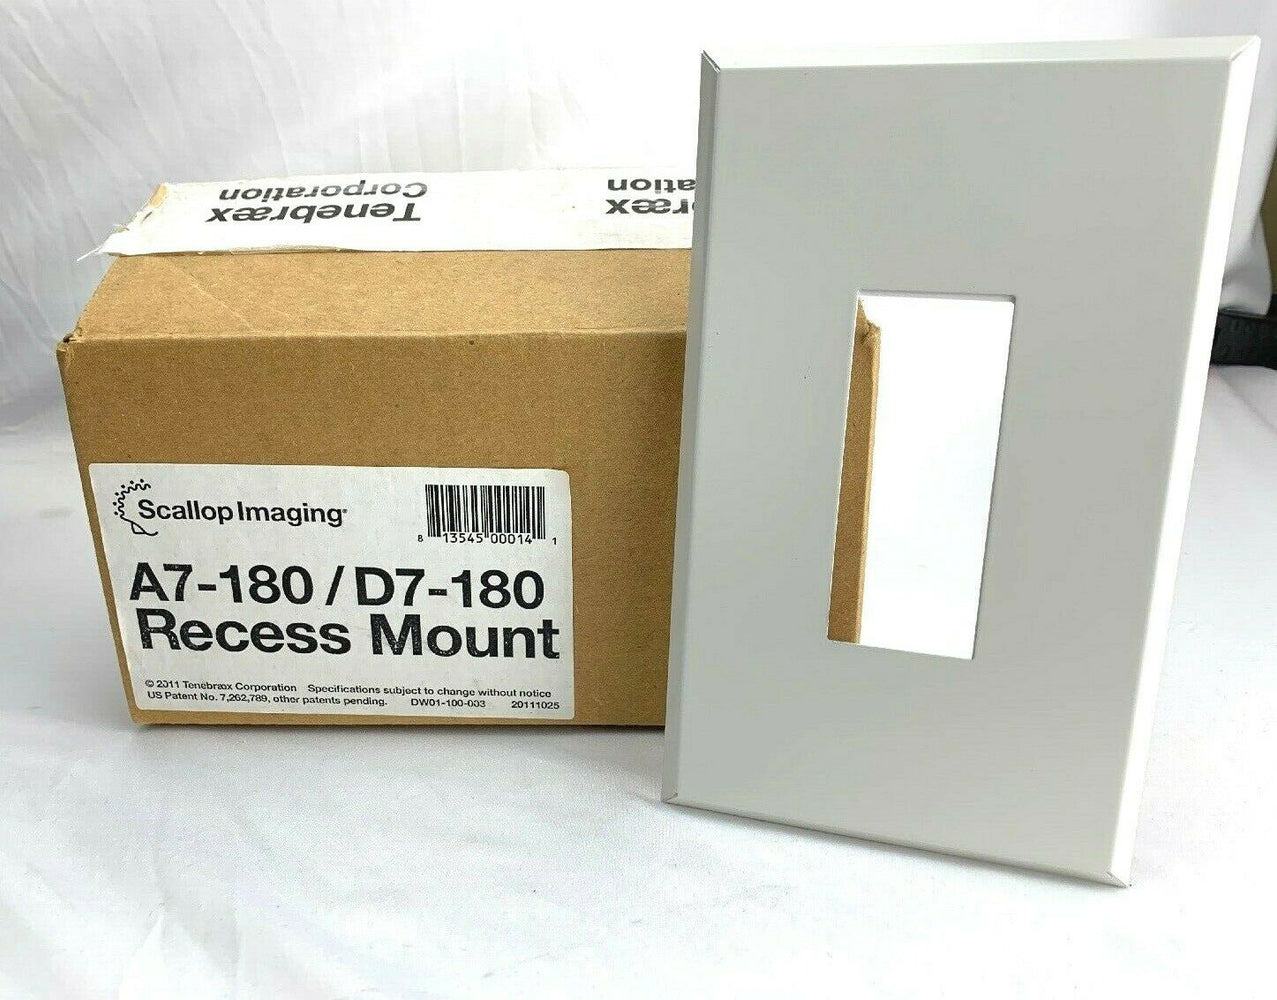 Scallop Imaging Recessed Mount for A7-180/D7-180 Security Cameras DW01-100-003